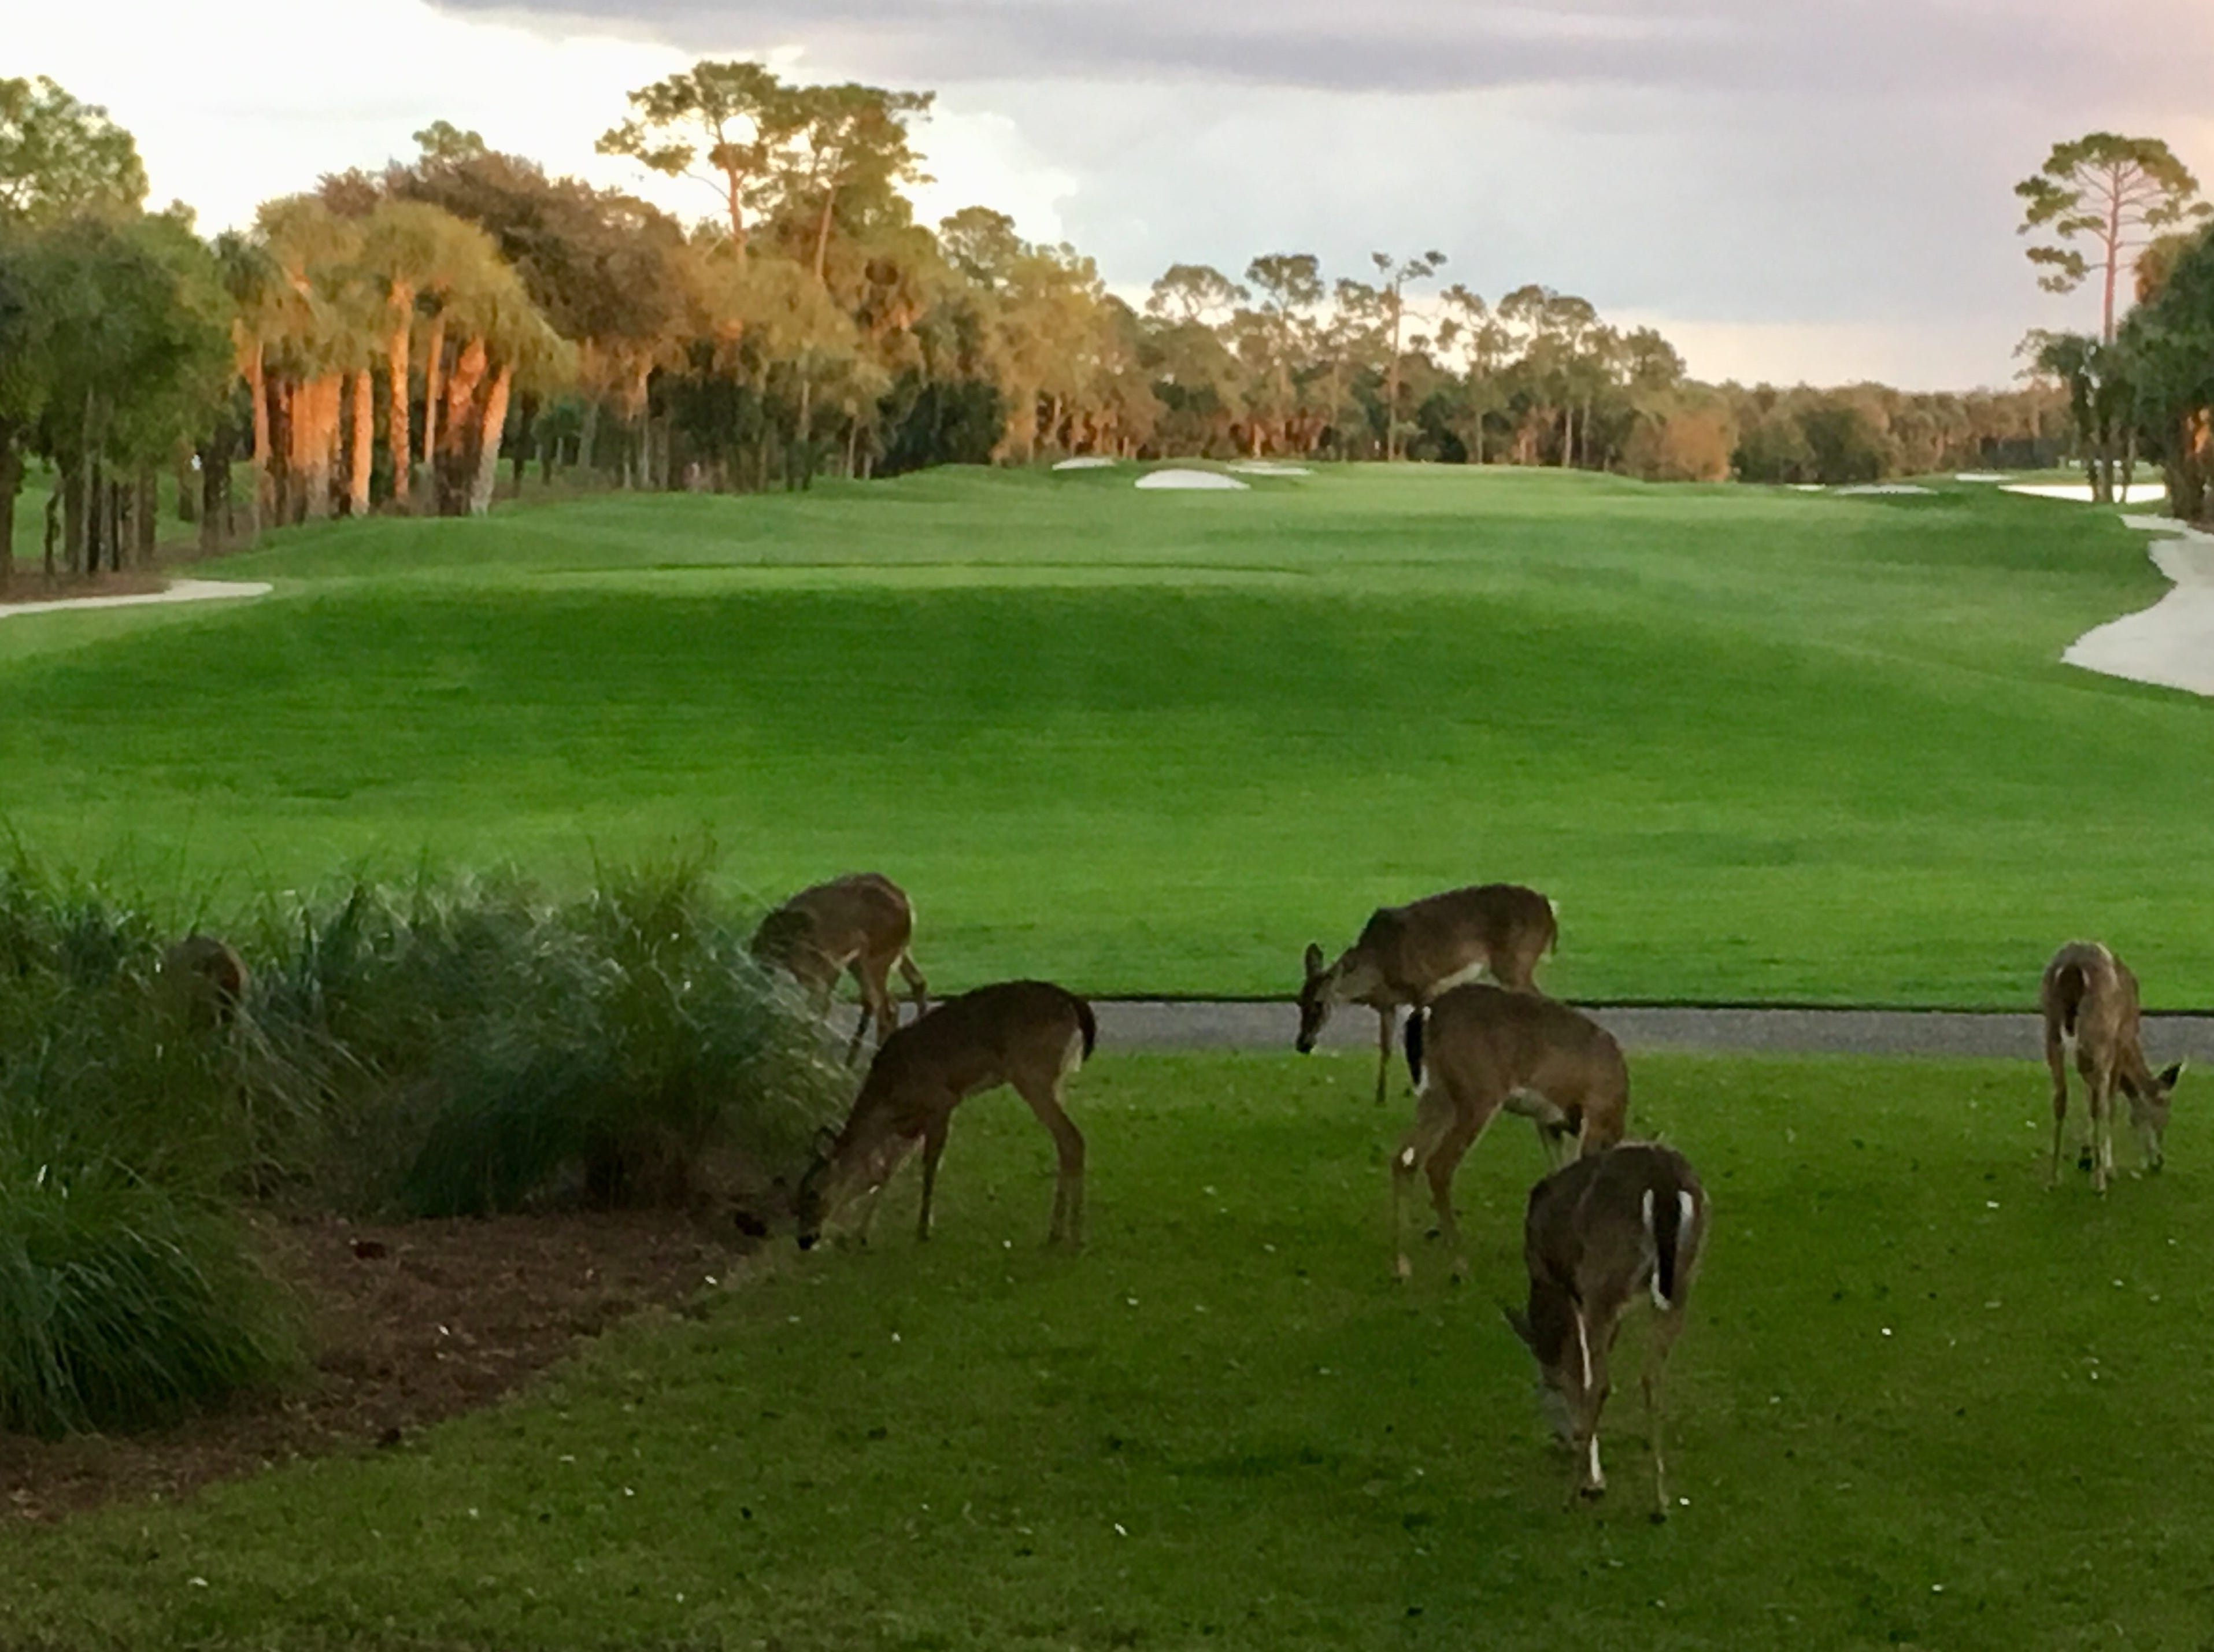 Michael Duggan, of Naples, took this photo of deer grazing on a golf course.